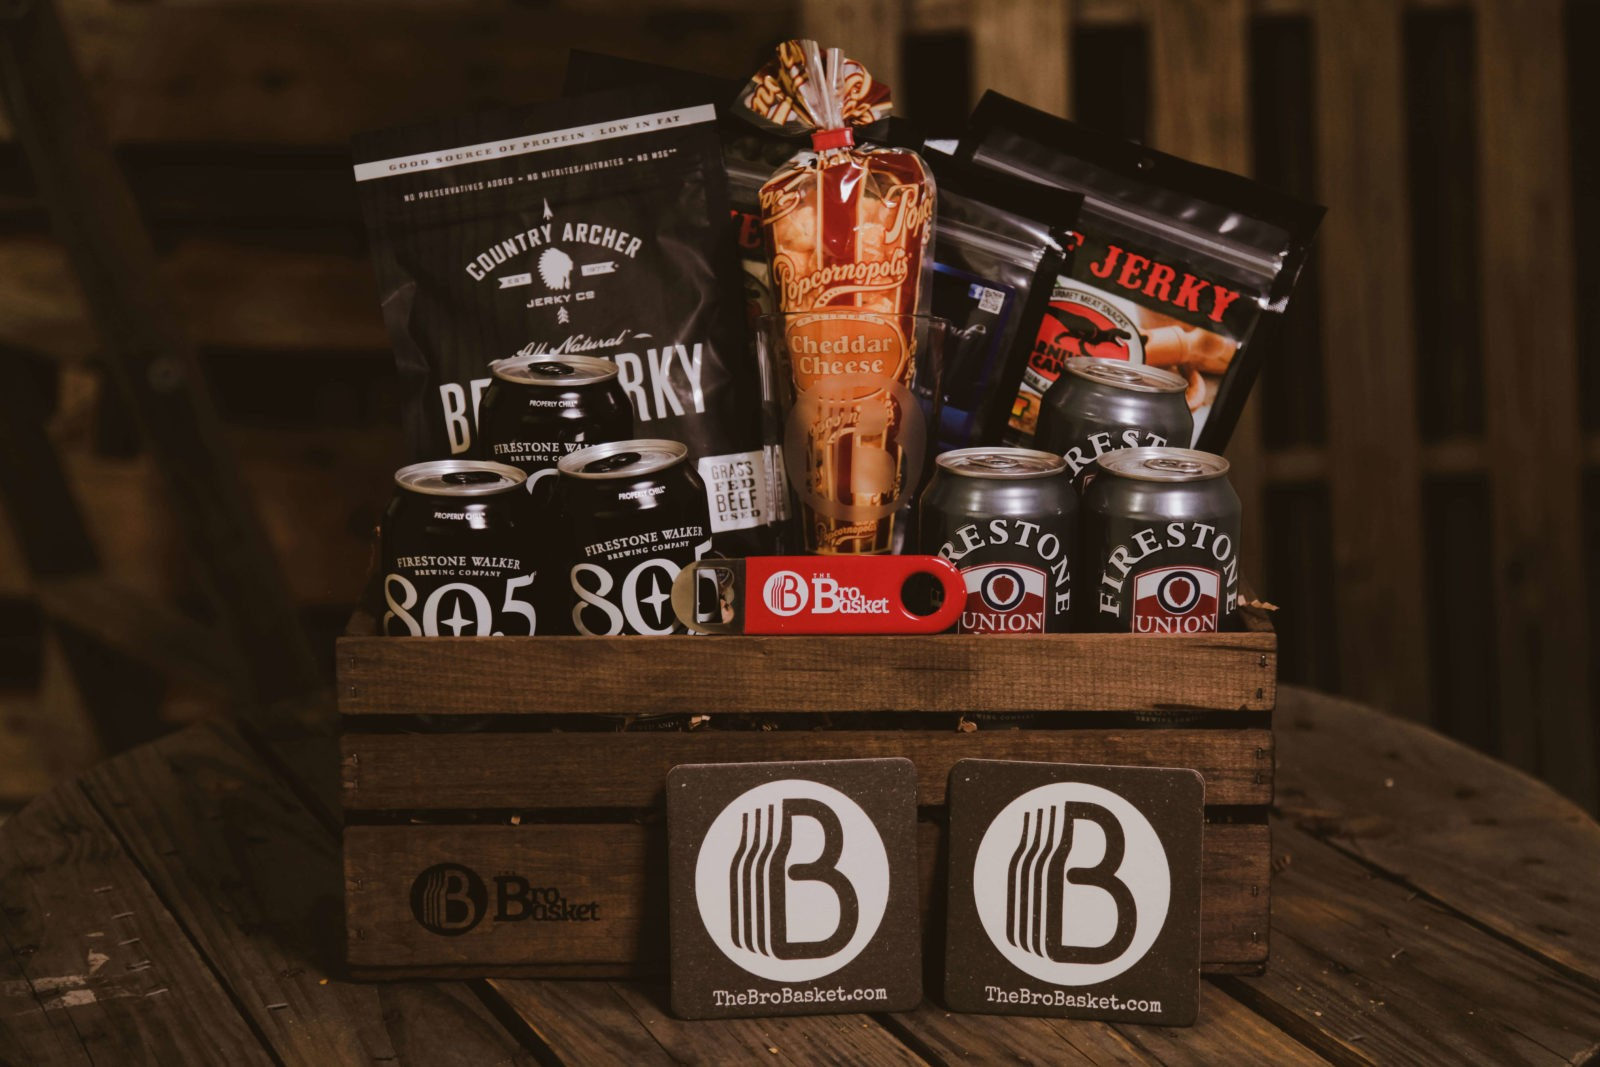 Awesome Beef Jerky Gift Basket | The Beer & Jerky Basket college care package guys